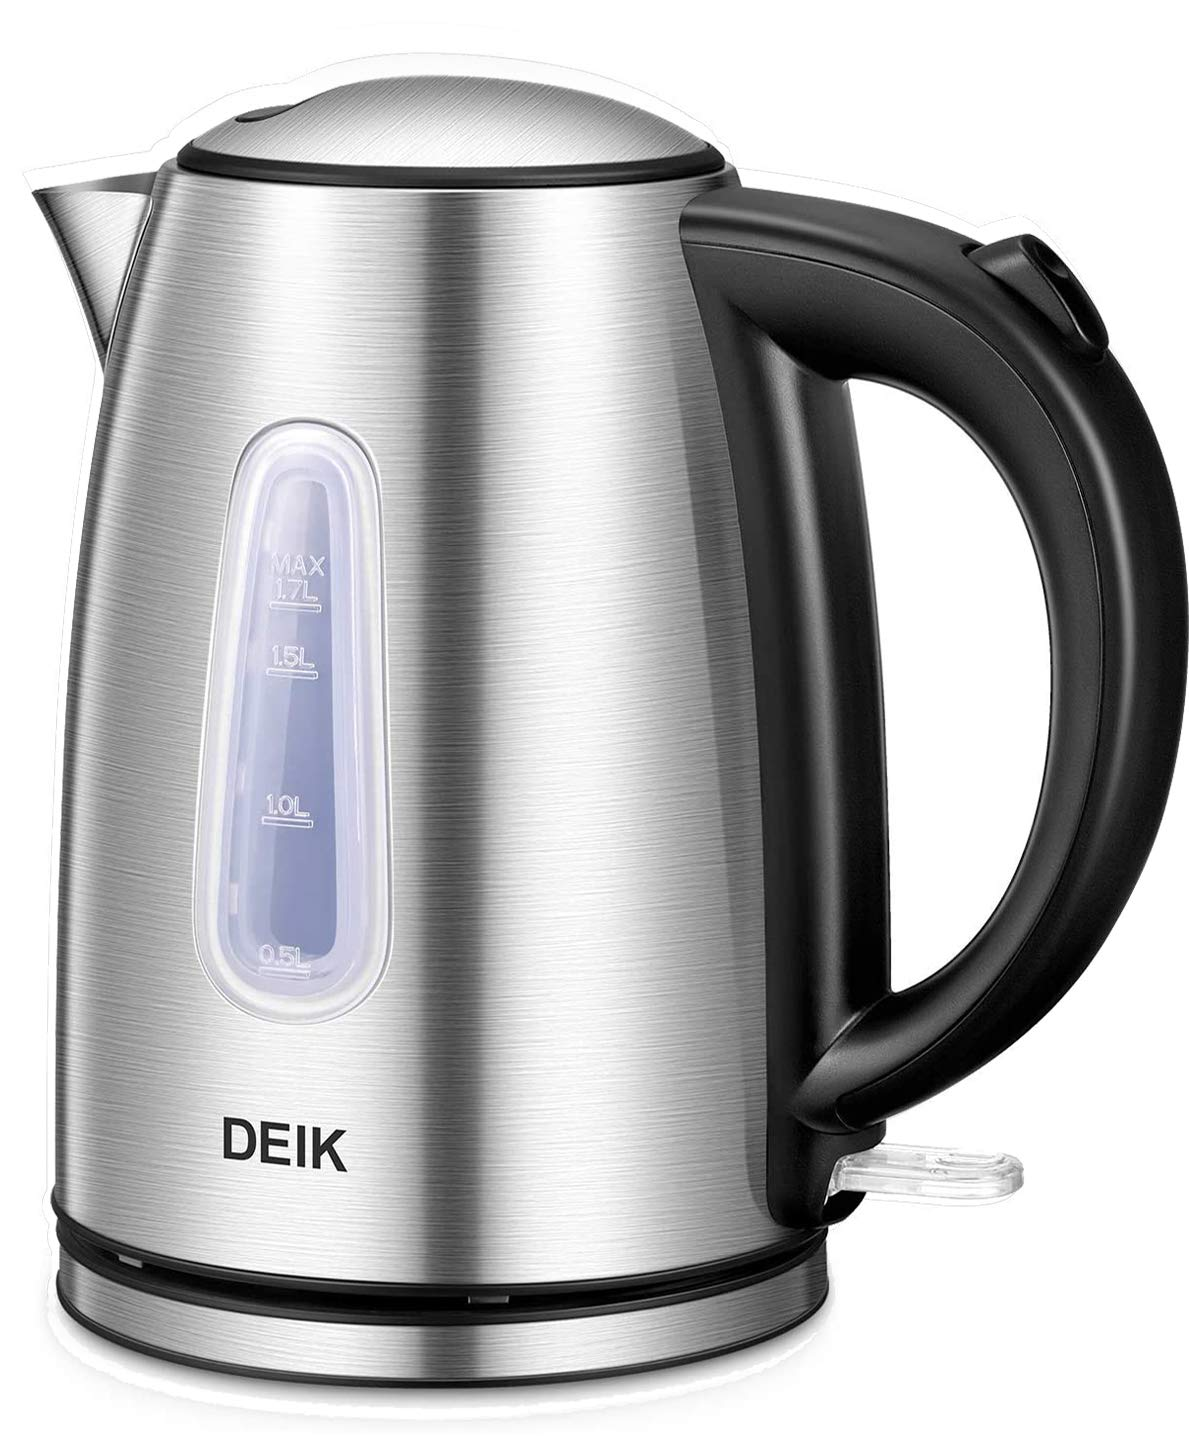 Cordless Quick Boil Water Kettle By